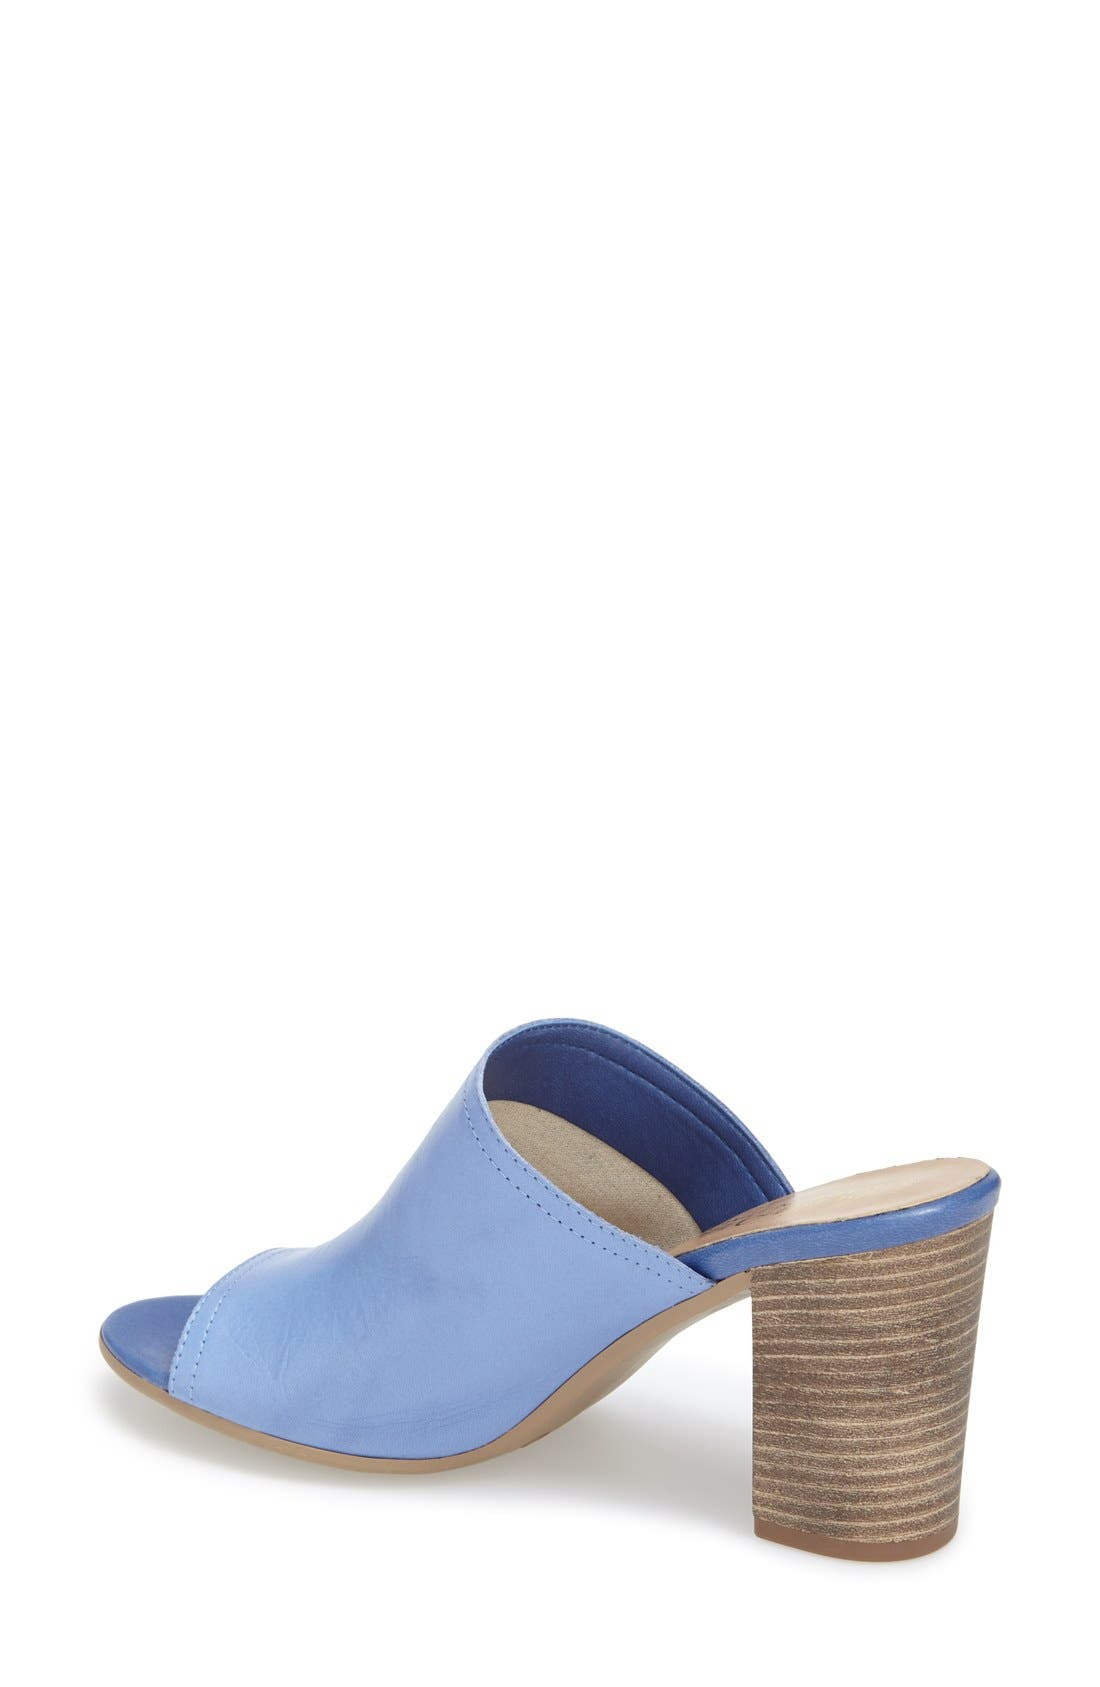 'Arno' Leather Mule,                             Alternate thumbnail 9, color,